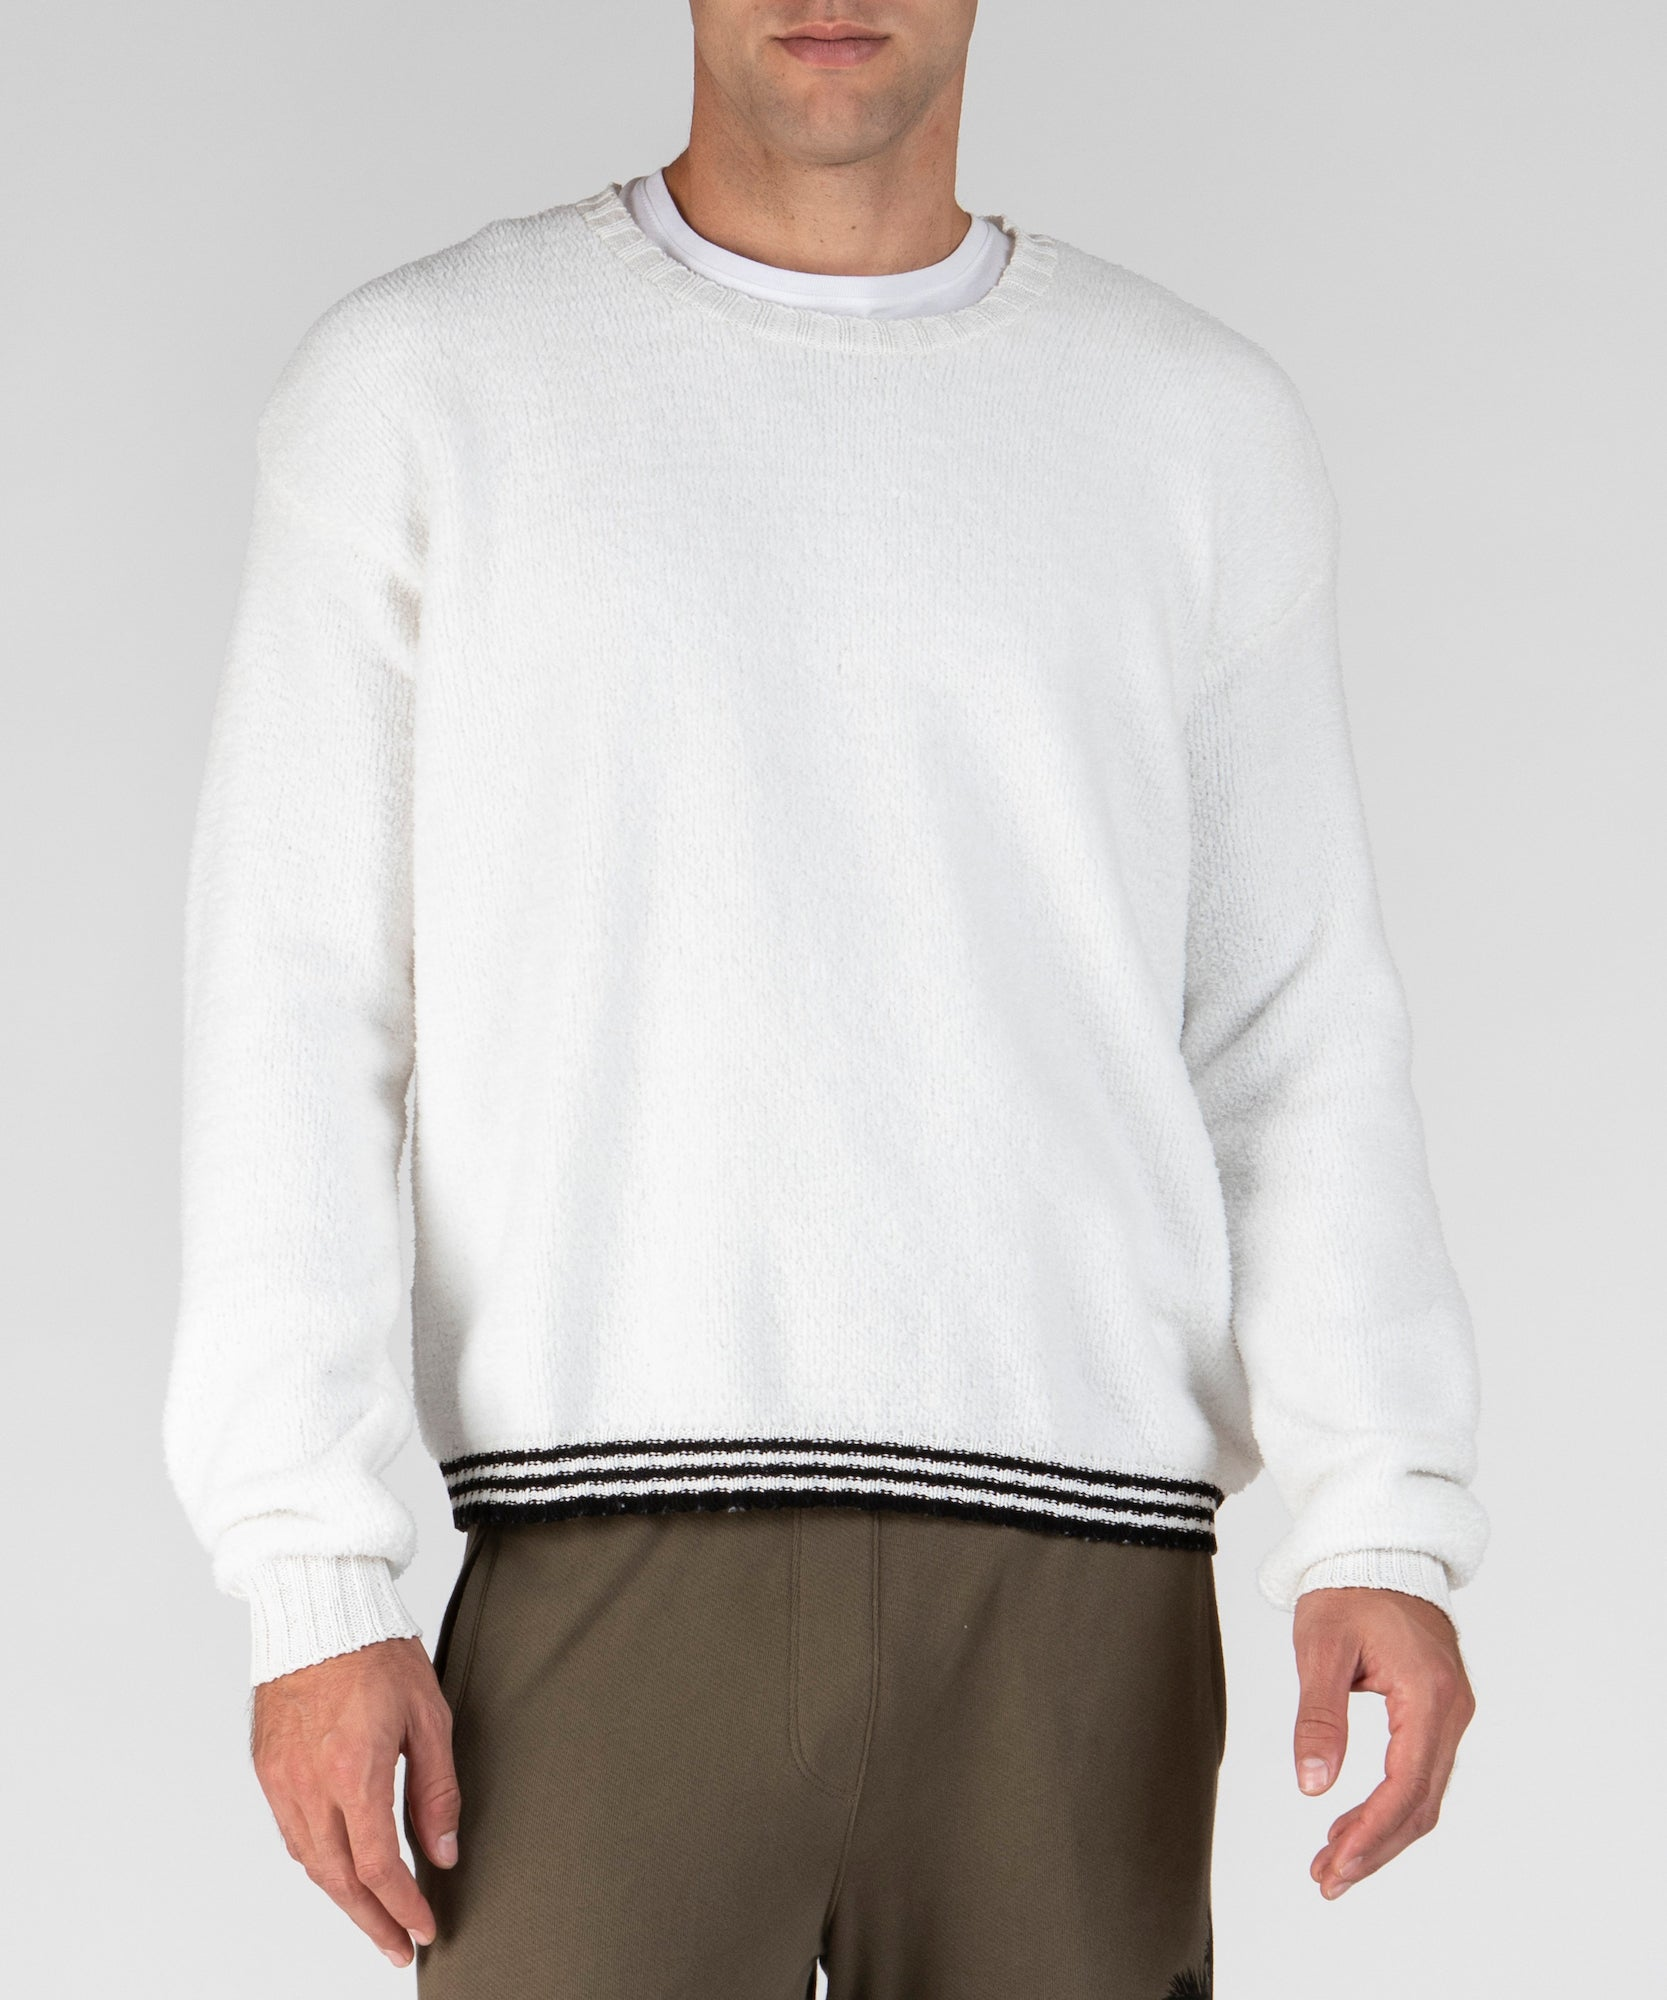 White and Black Chenille Crew Neck Sweater - Men's Luxe Sweater by ATM Anthony Thomas Melillo